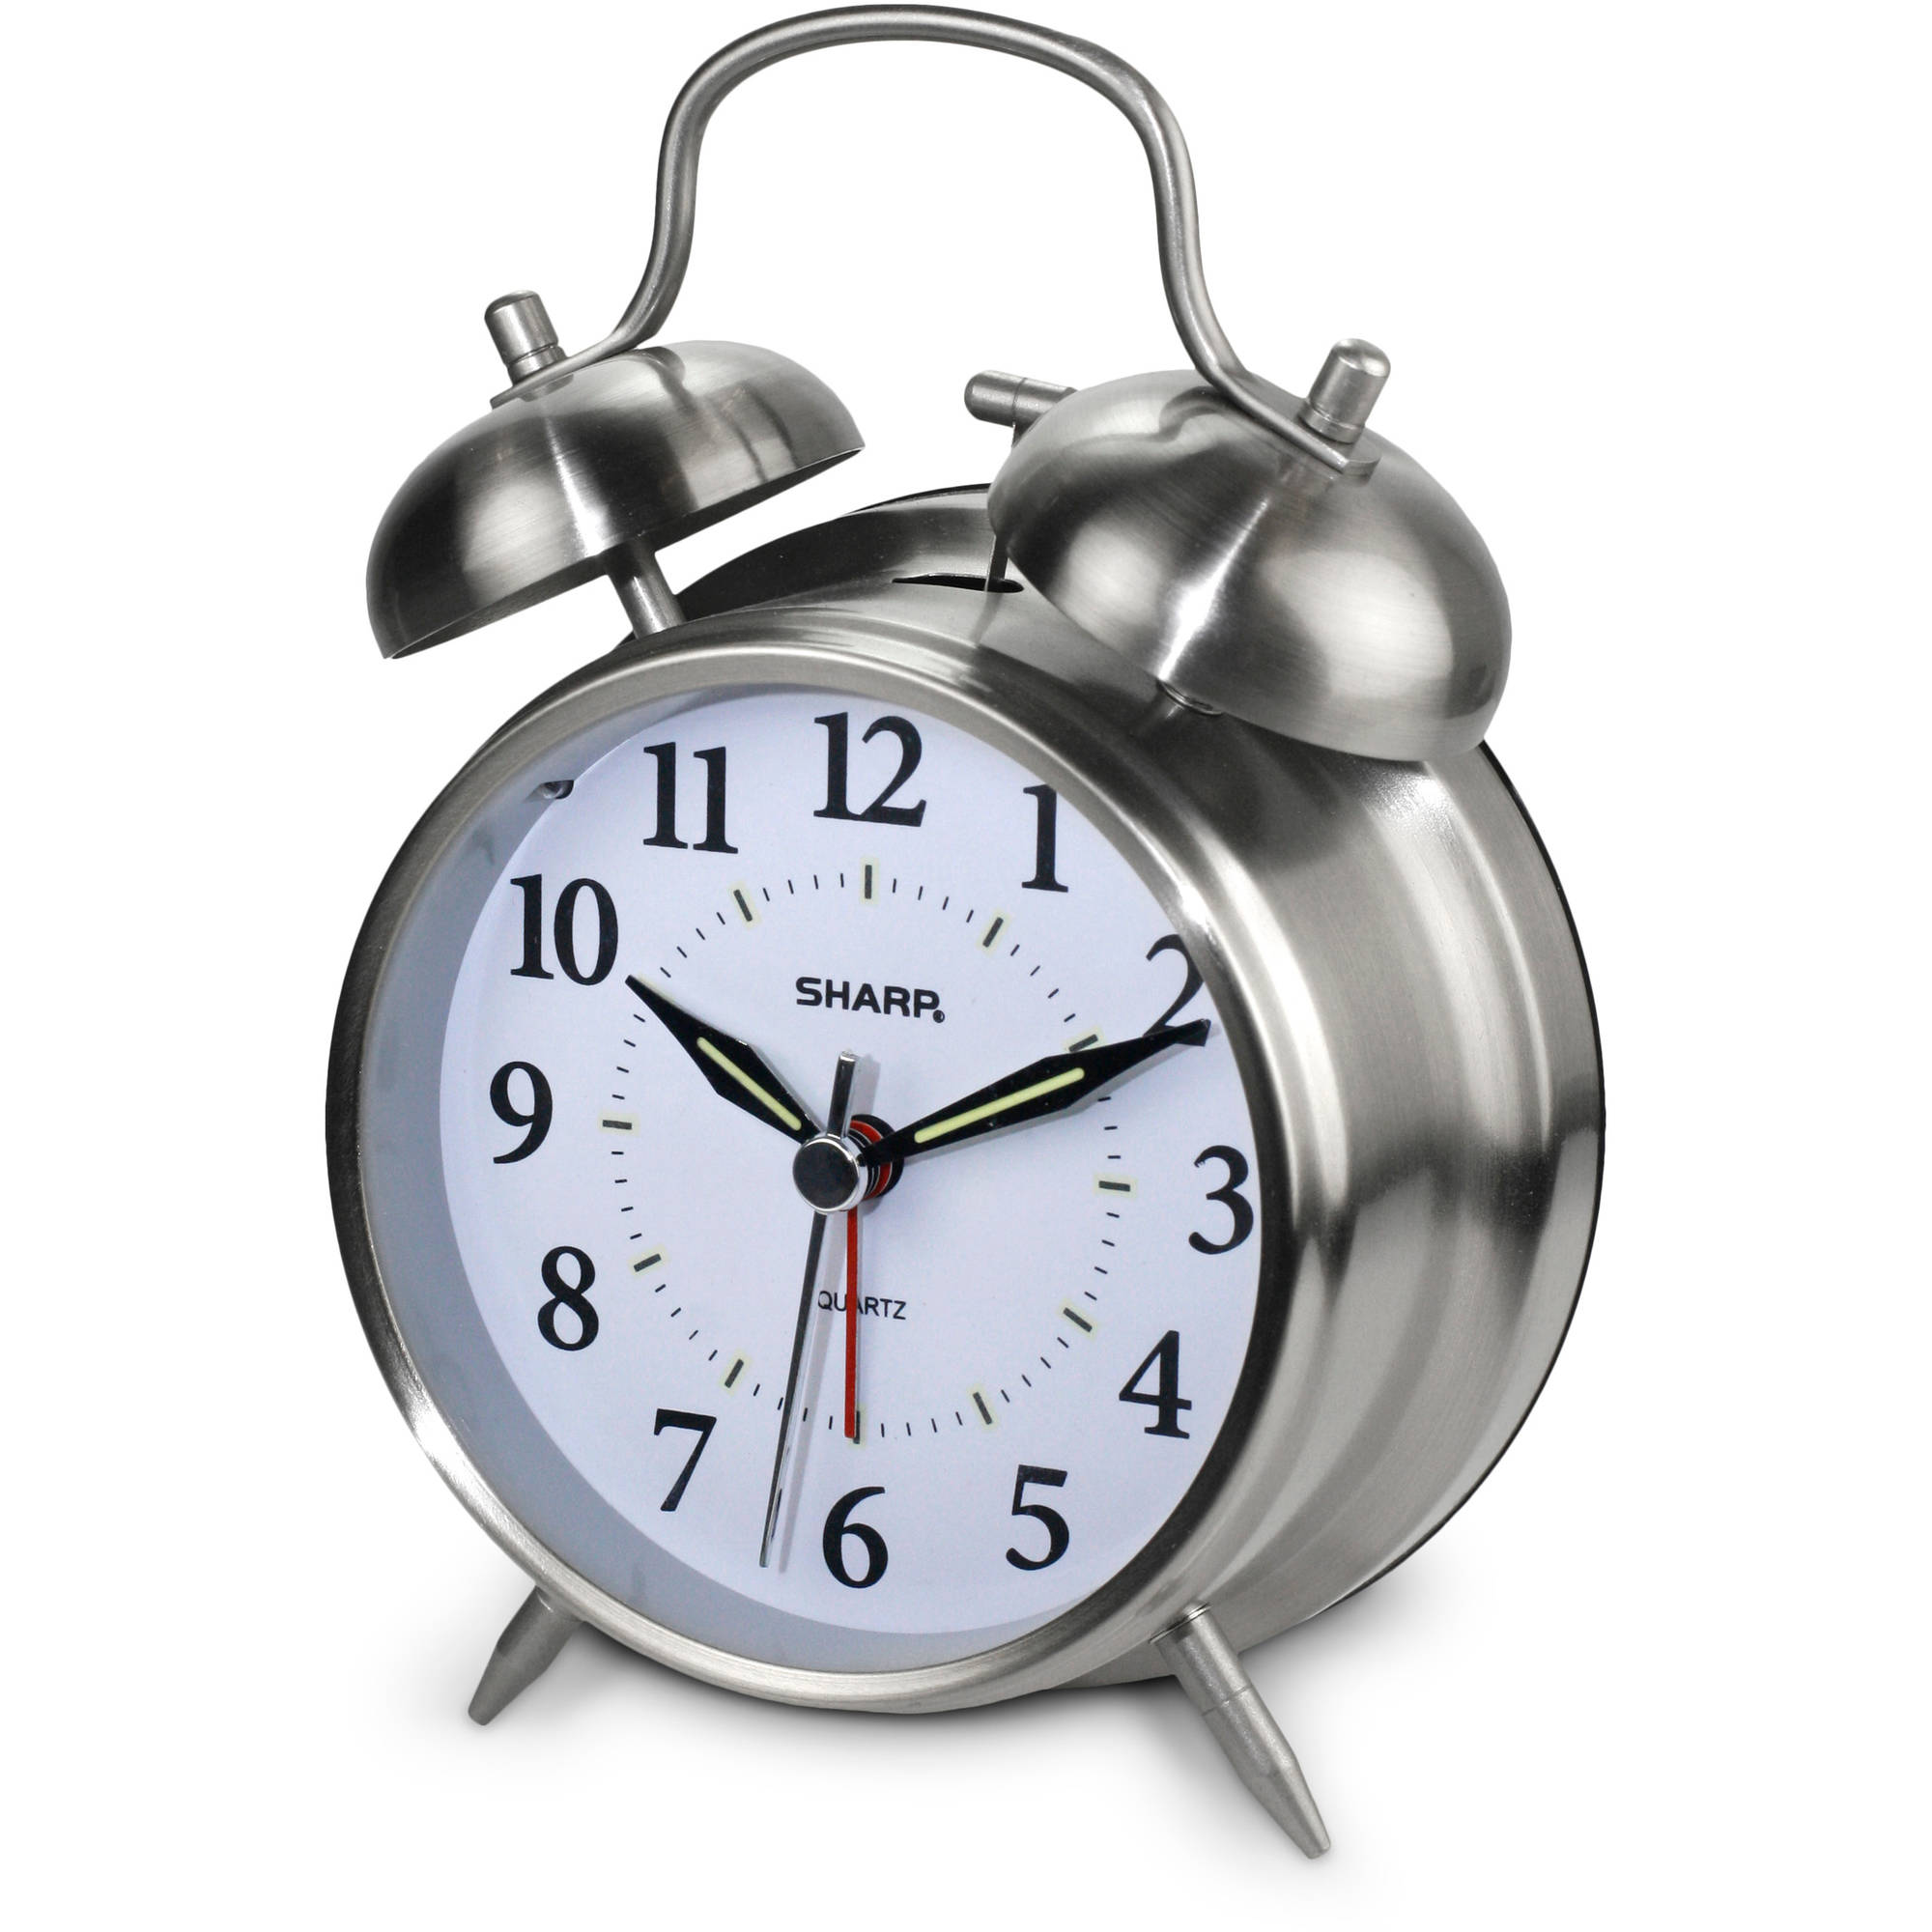 Sharp Twinbell Quartz Analog Alarm Clock